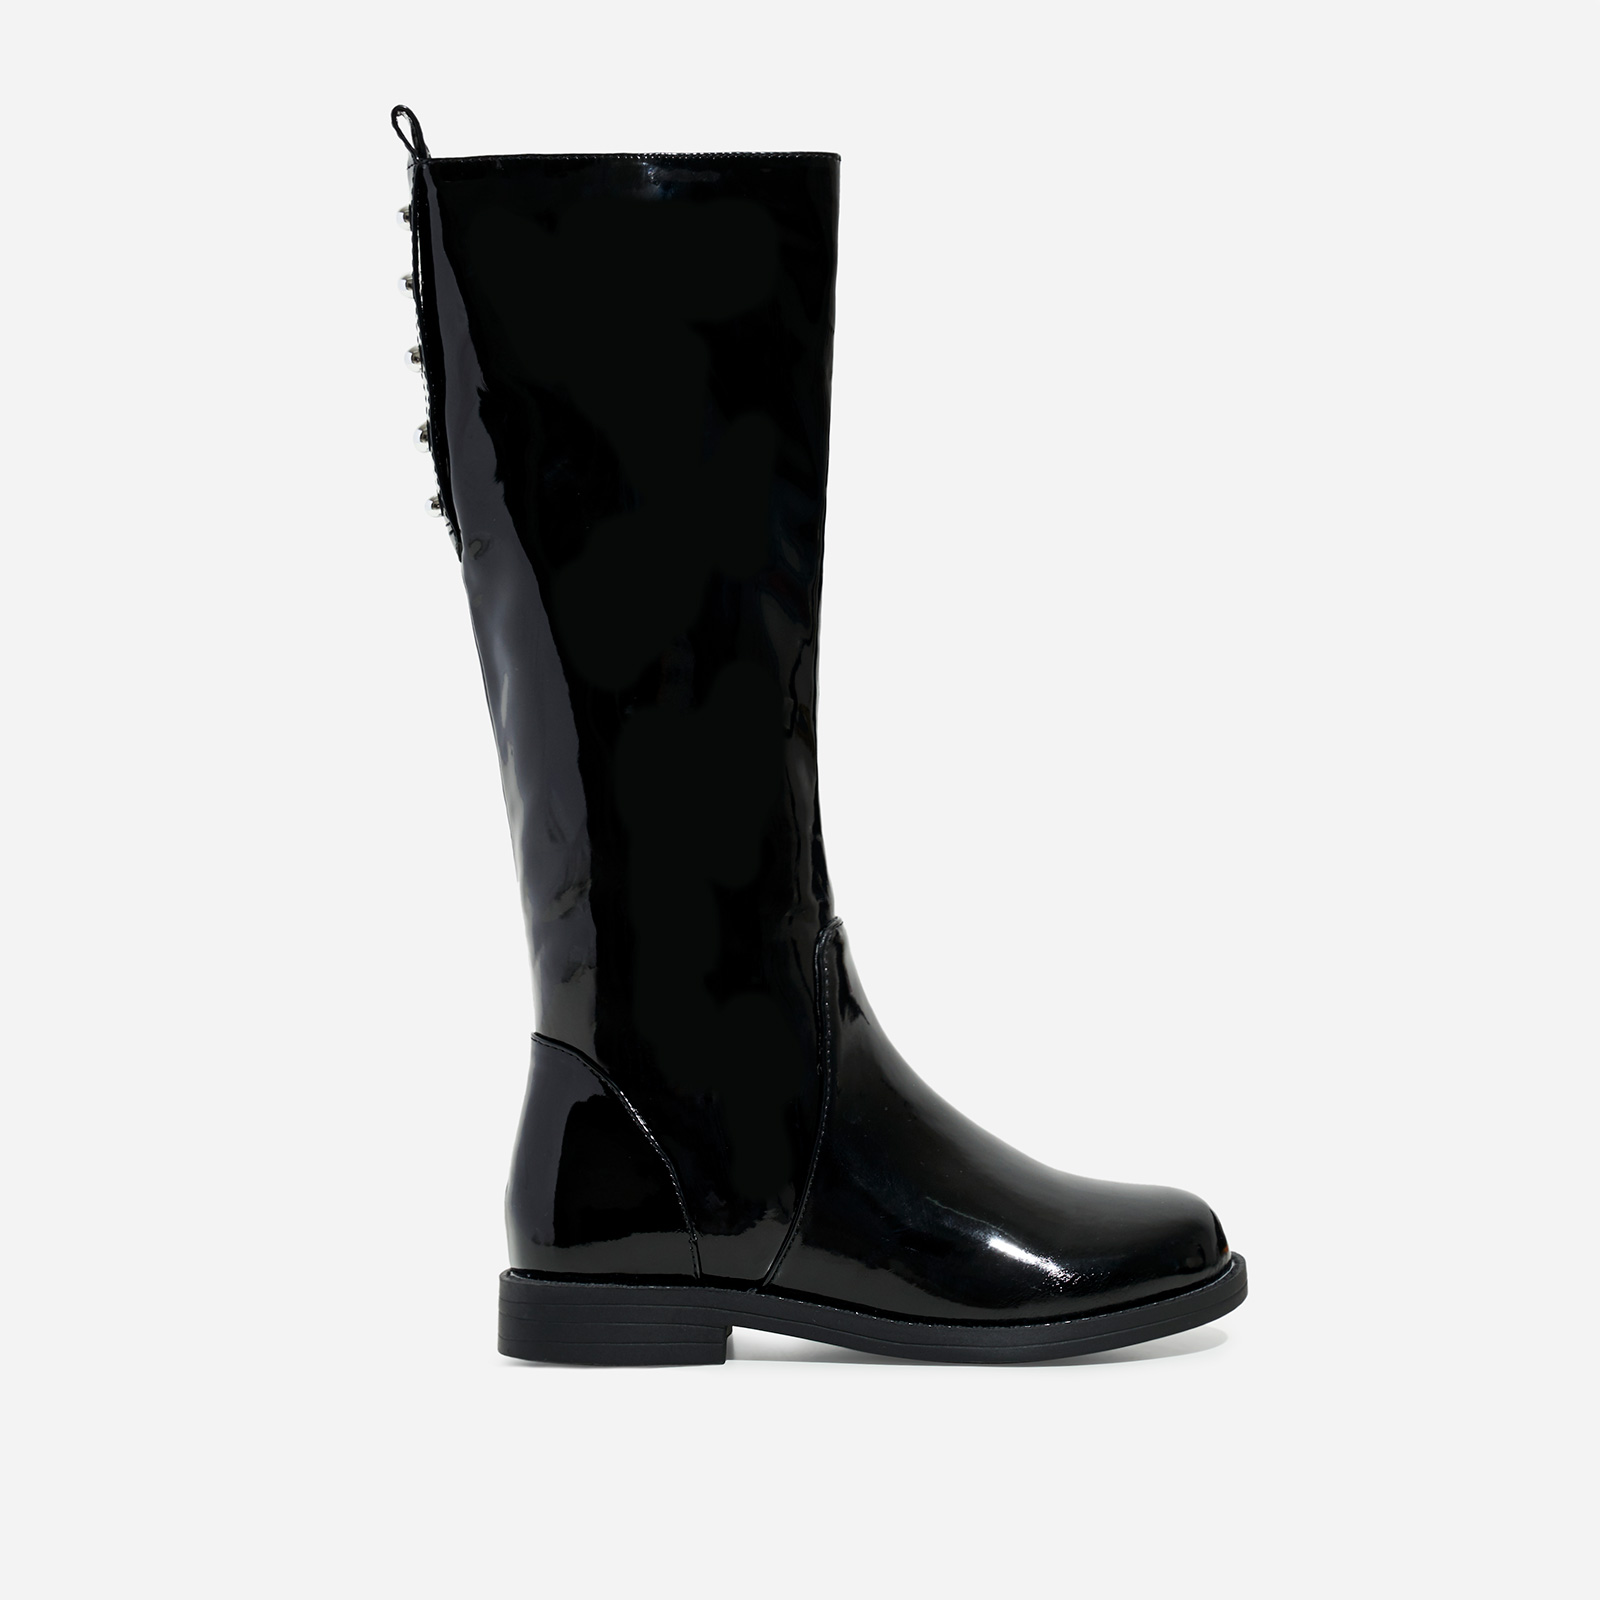 Sunshine Girl's Studded Detail Knee High Long Boot In Black Patent